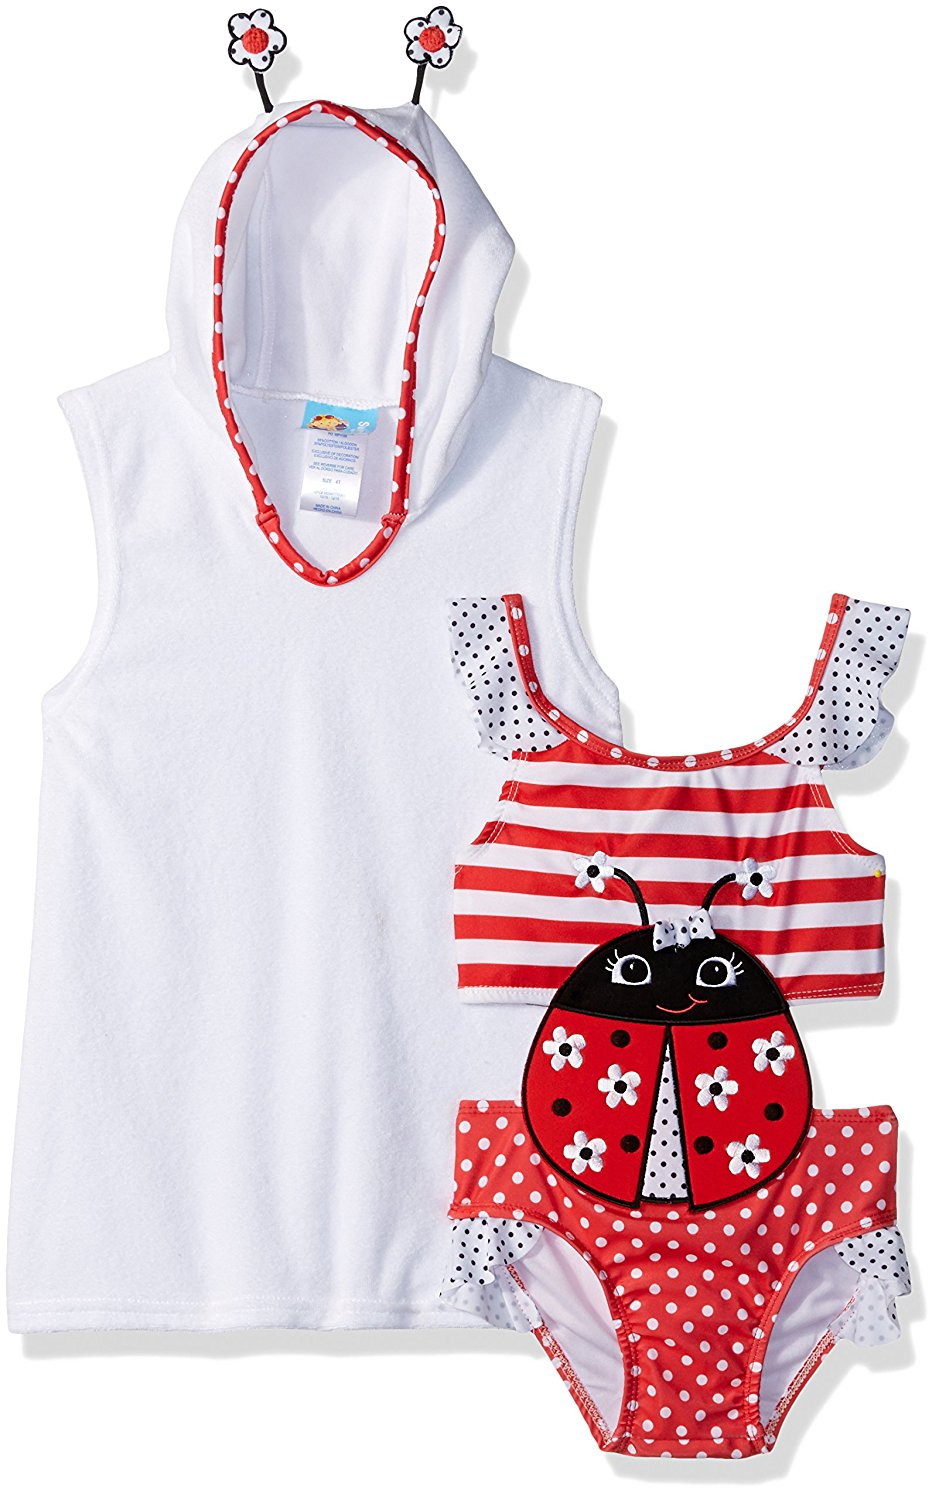 4a1f7a5ddc940 Get Quotations · Baby Buns Toddler Girls  Little Lady Terry Cover-up Swim  Set